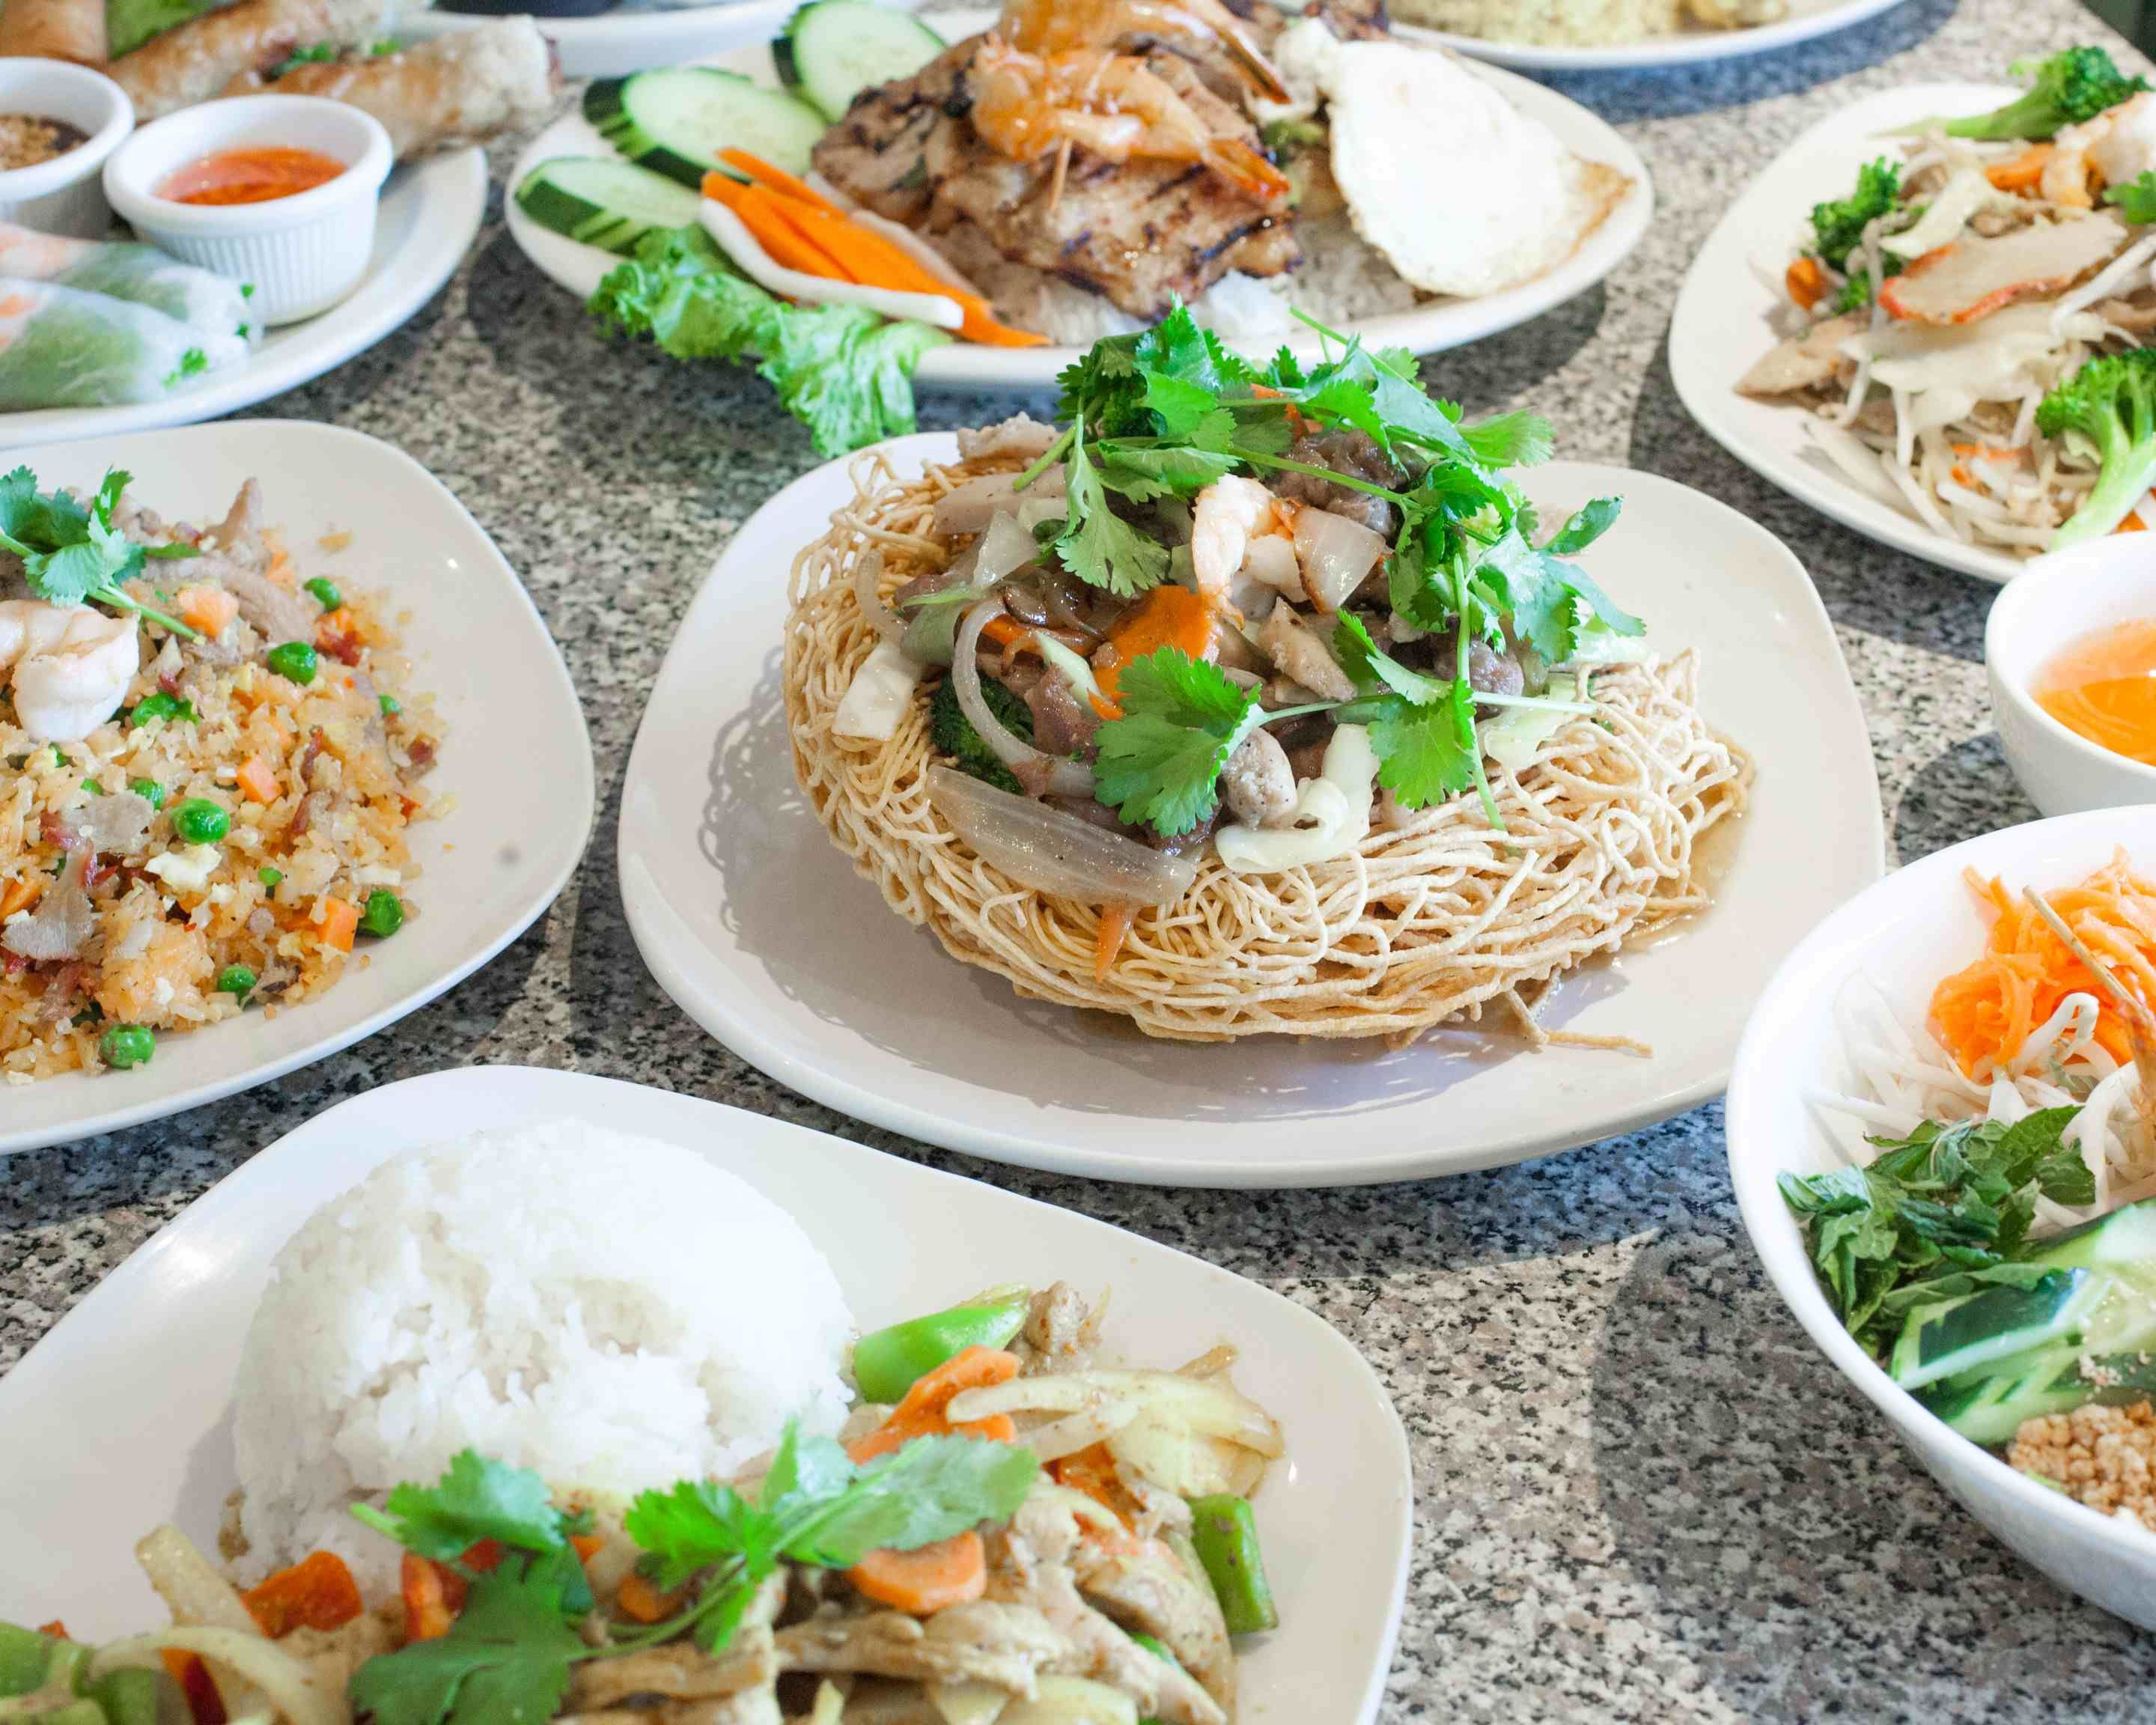 Linh Son Restaurant Delivery | Federal Way | Uber Eats